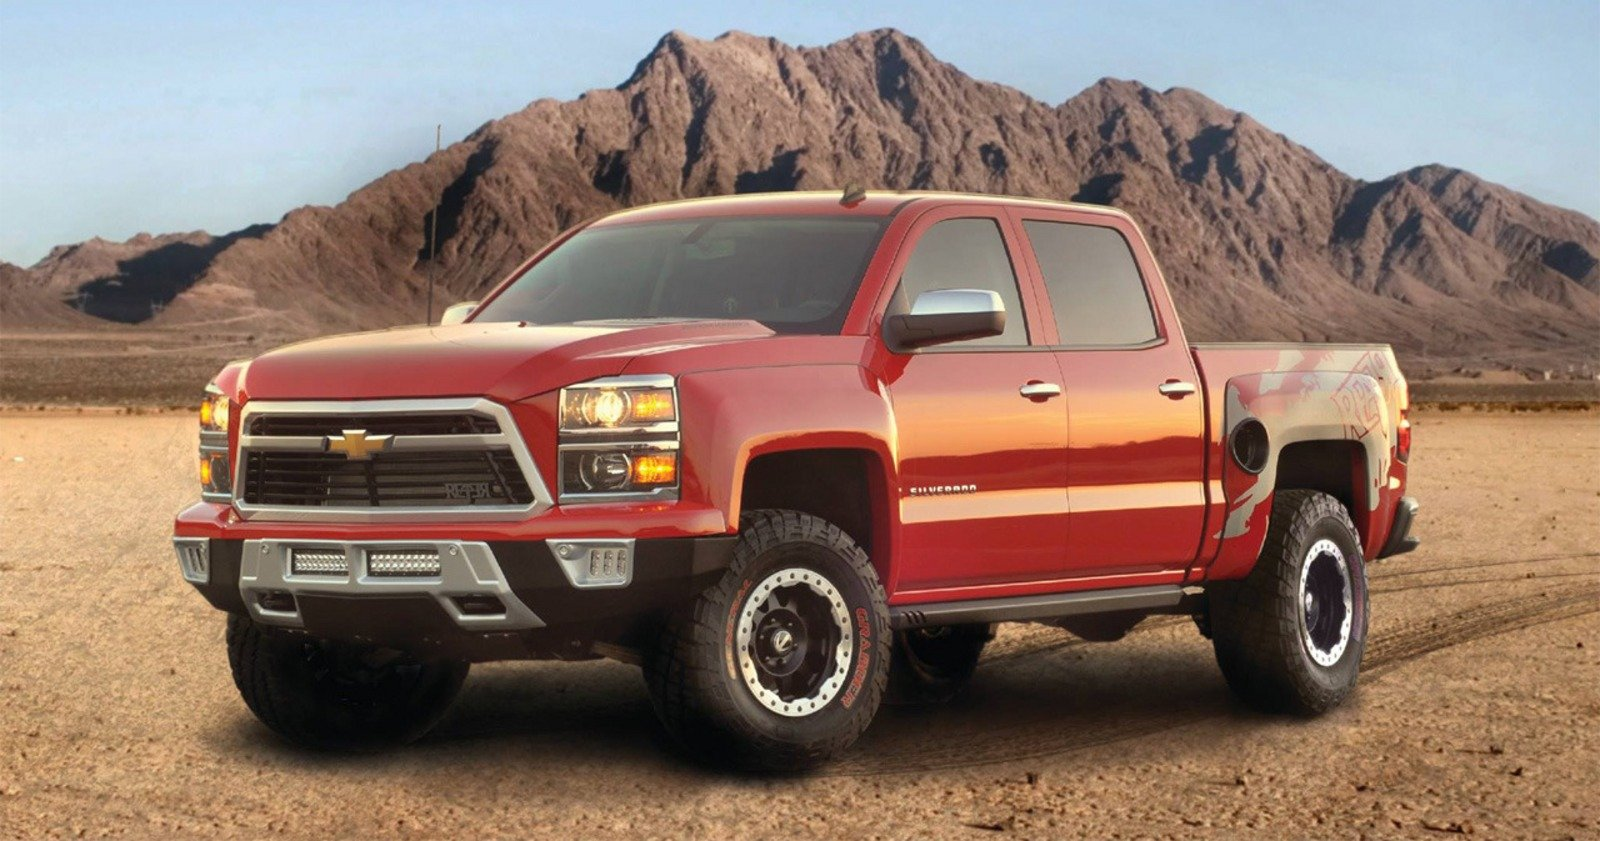 All Chevy black chevy reaper : 2014 Chevrolet Silverado Reaper By Southern Comfort Automotive And ...